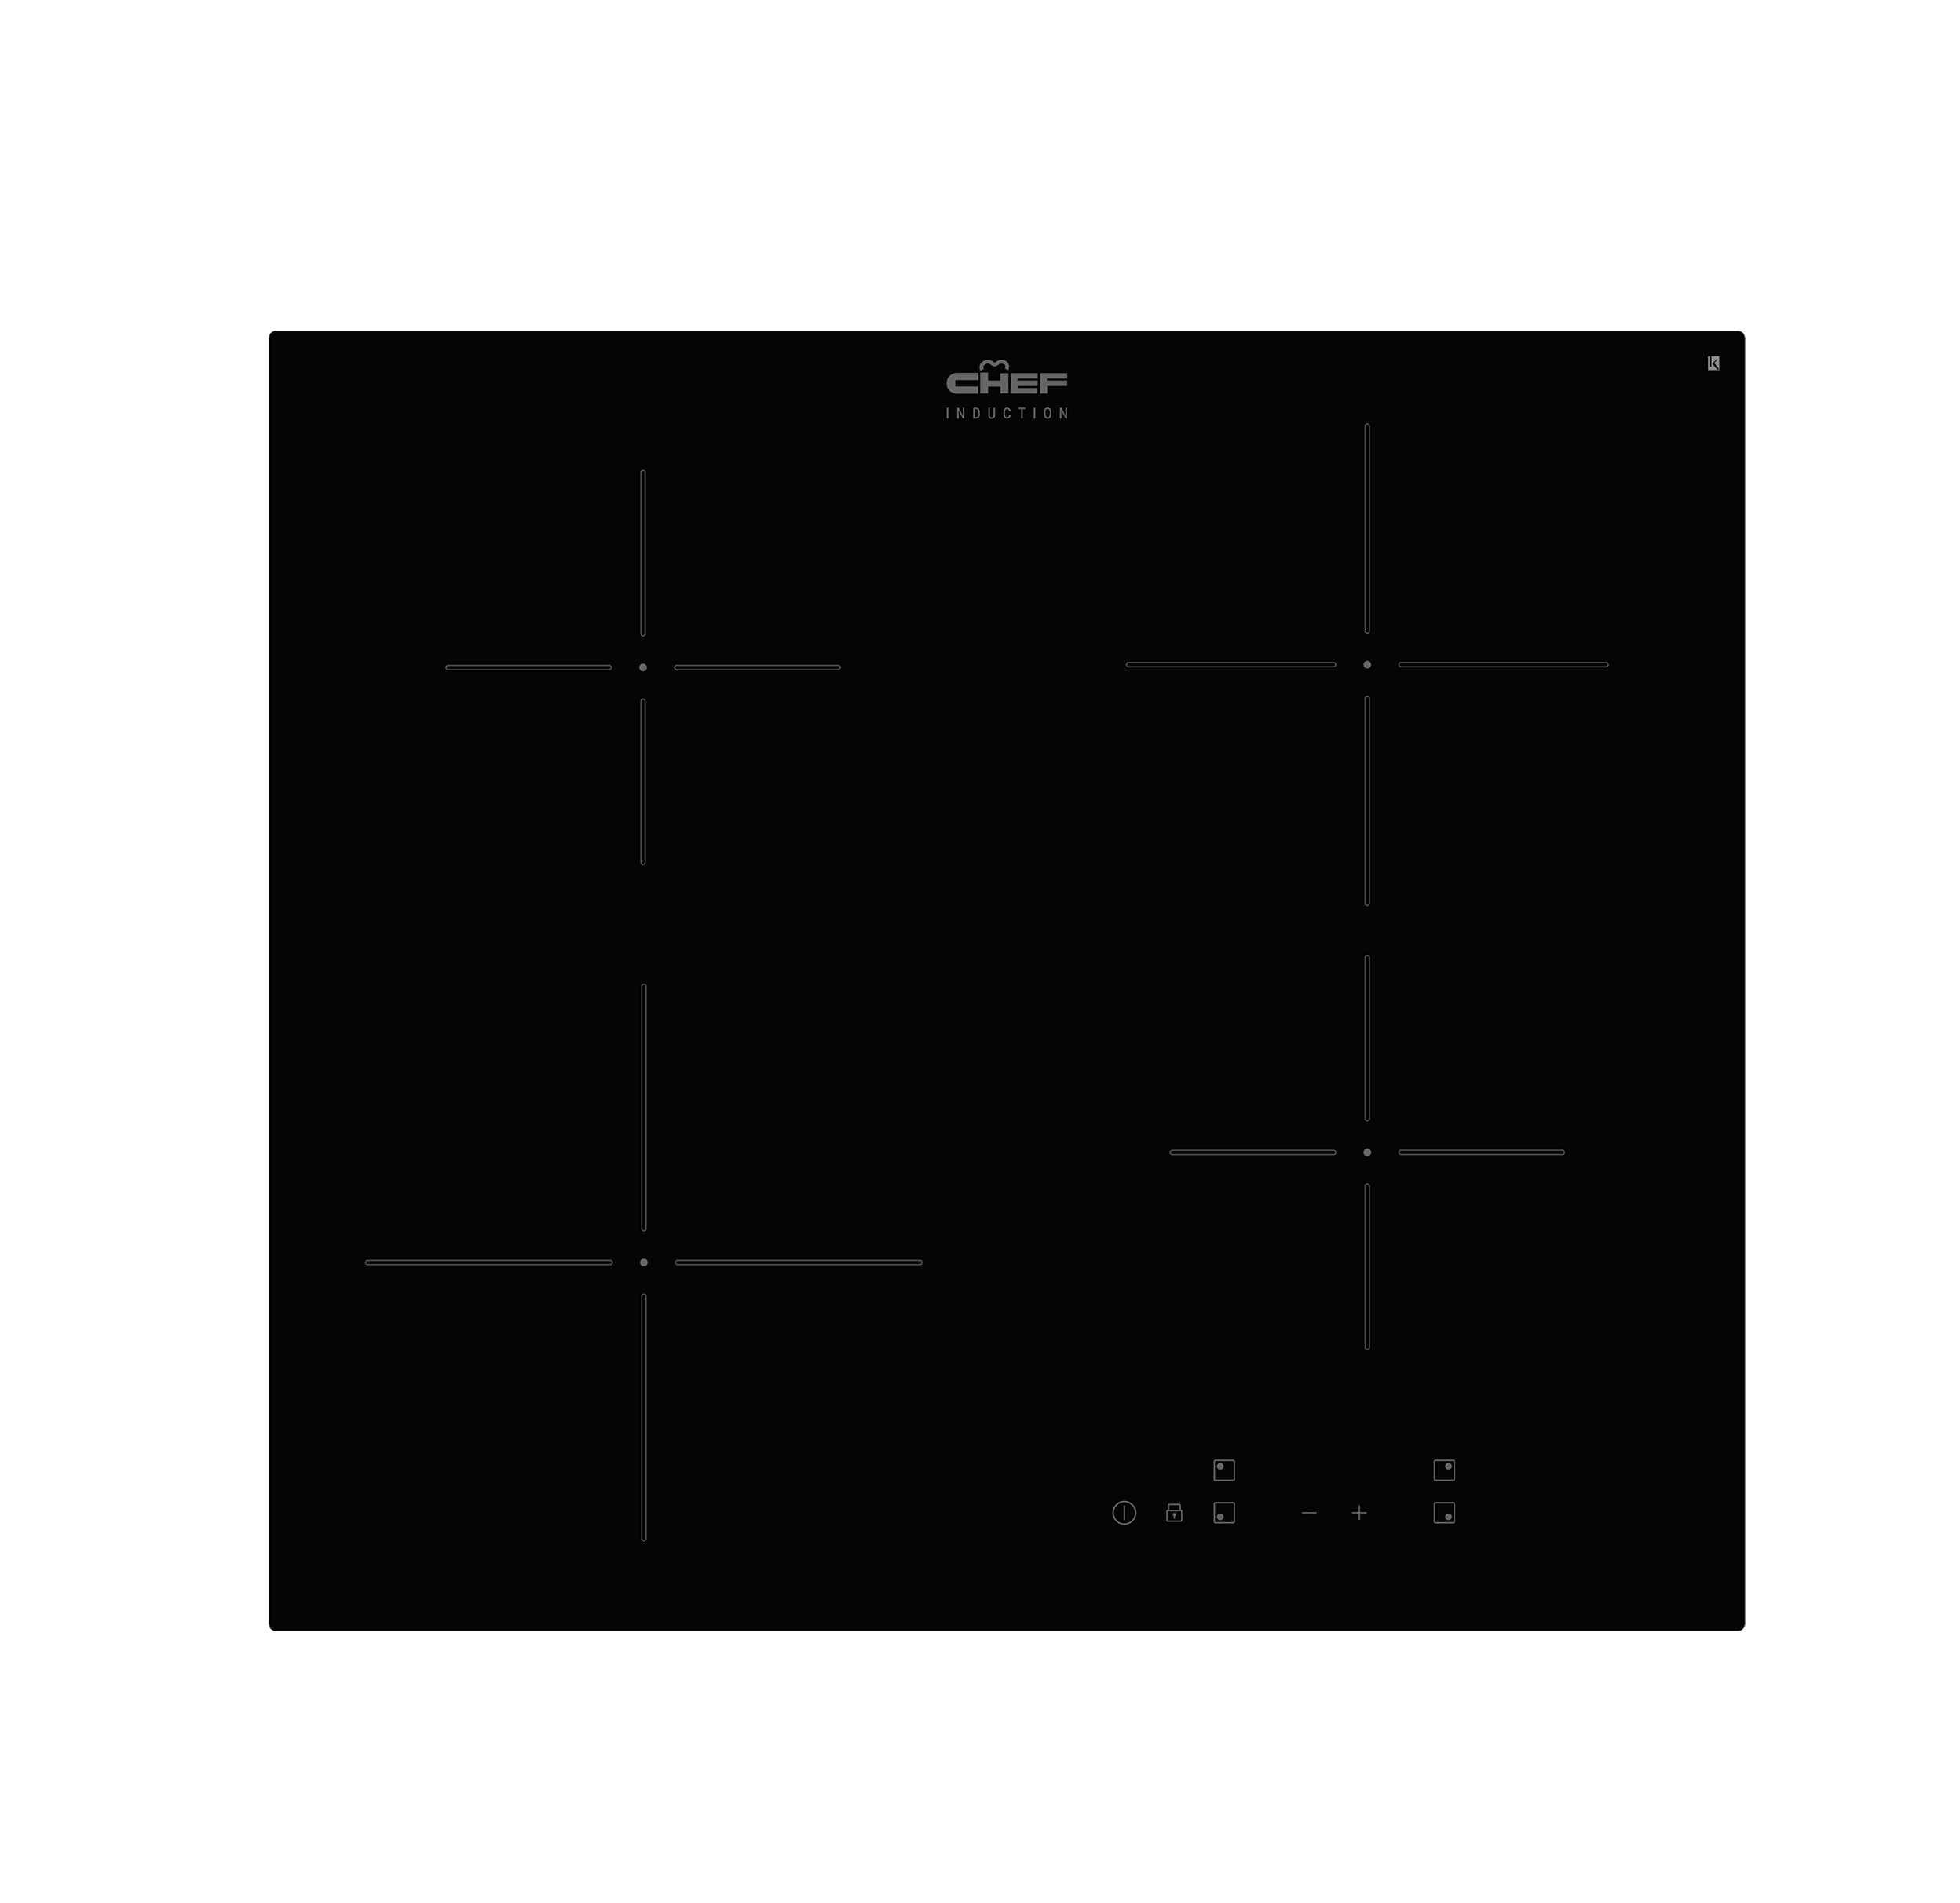 Chef CHI644 Kitchen Cooktop